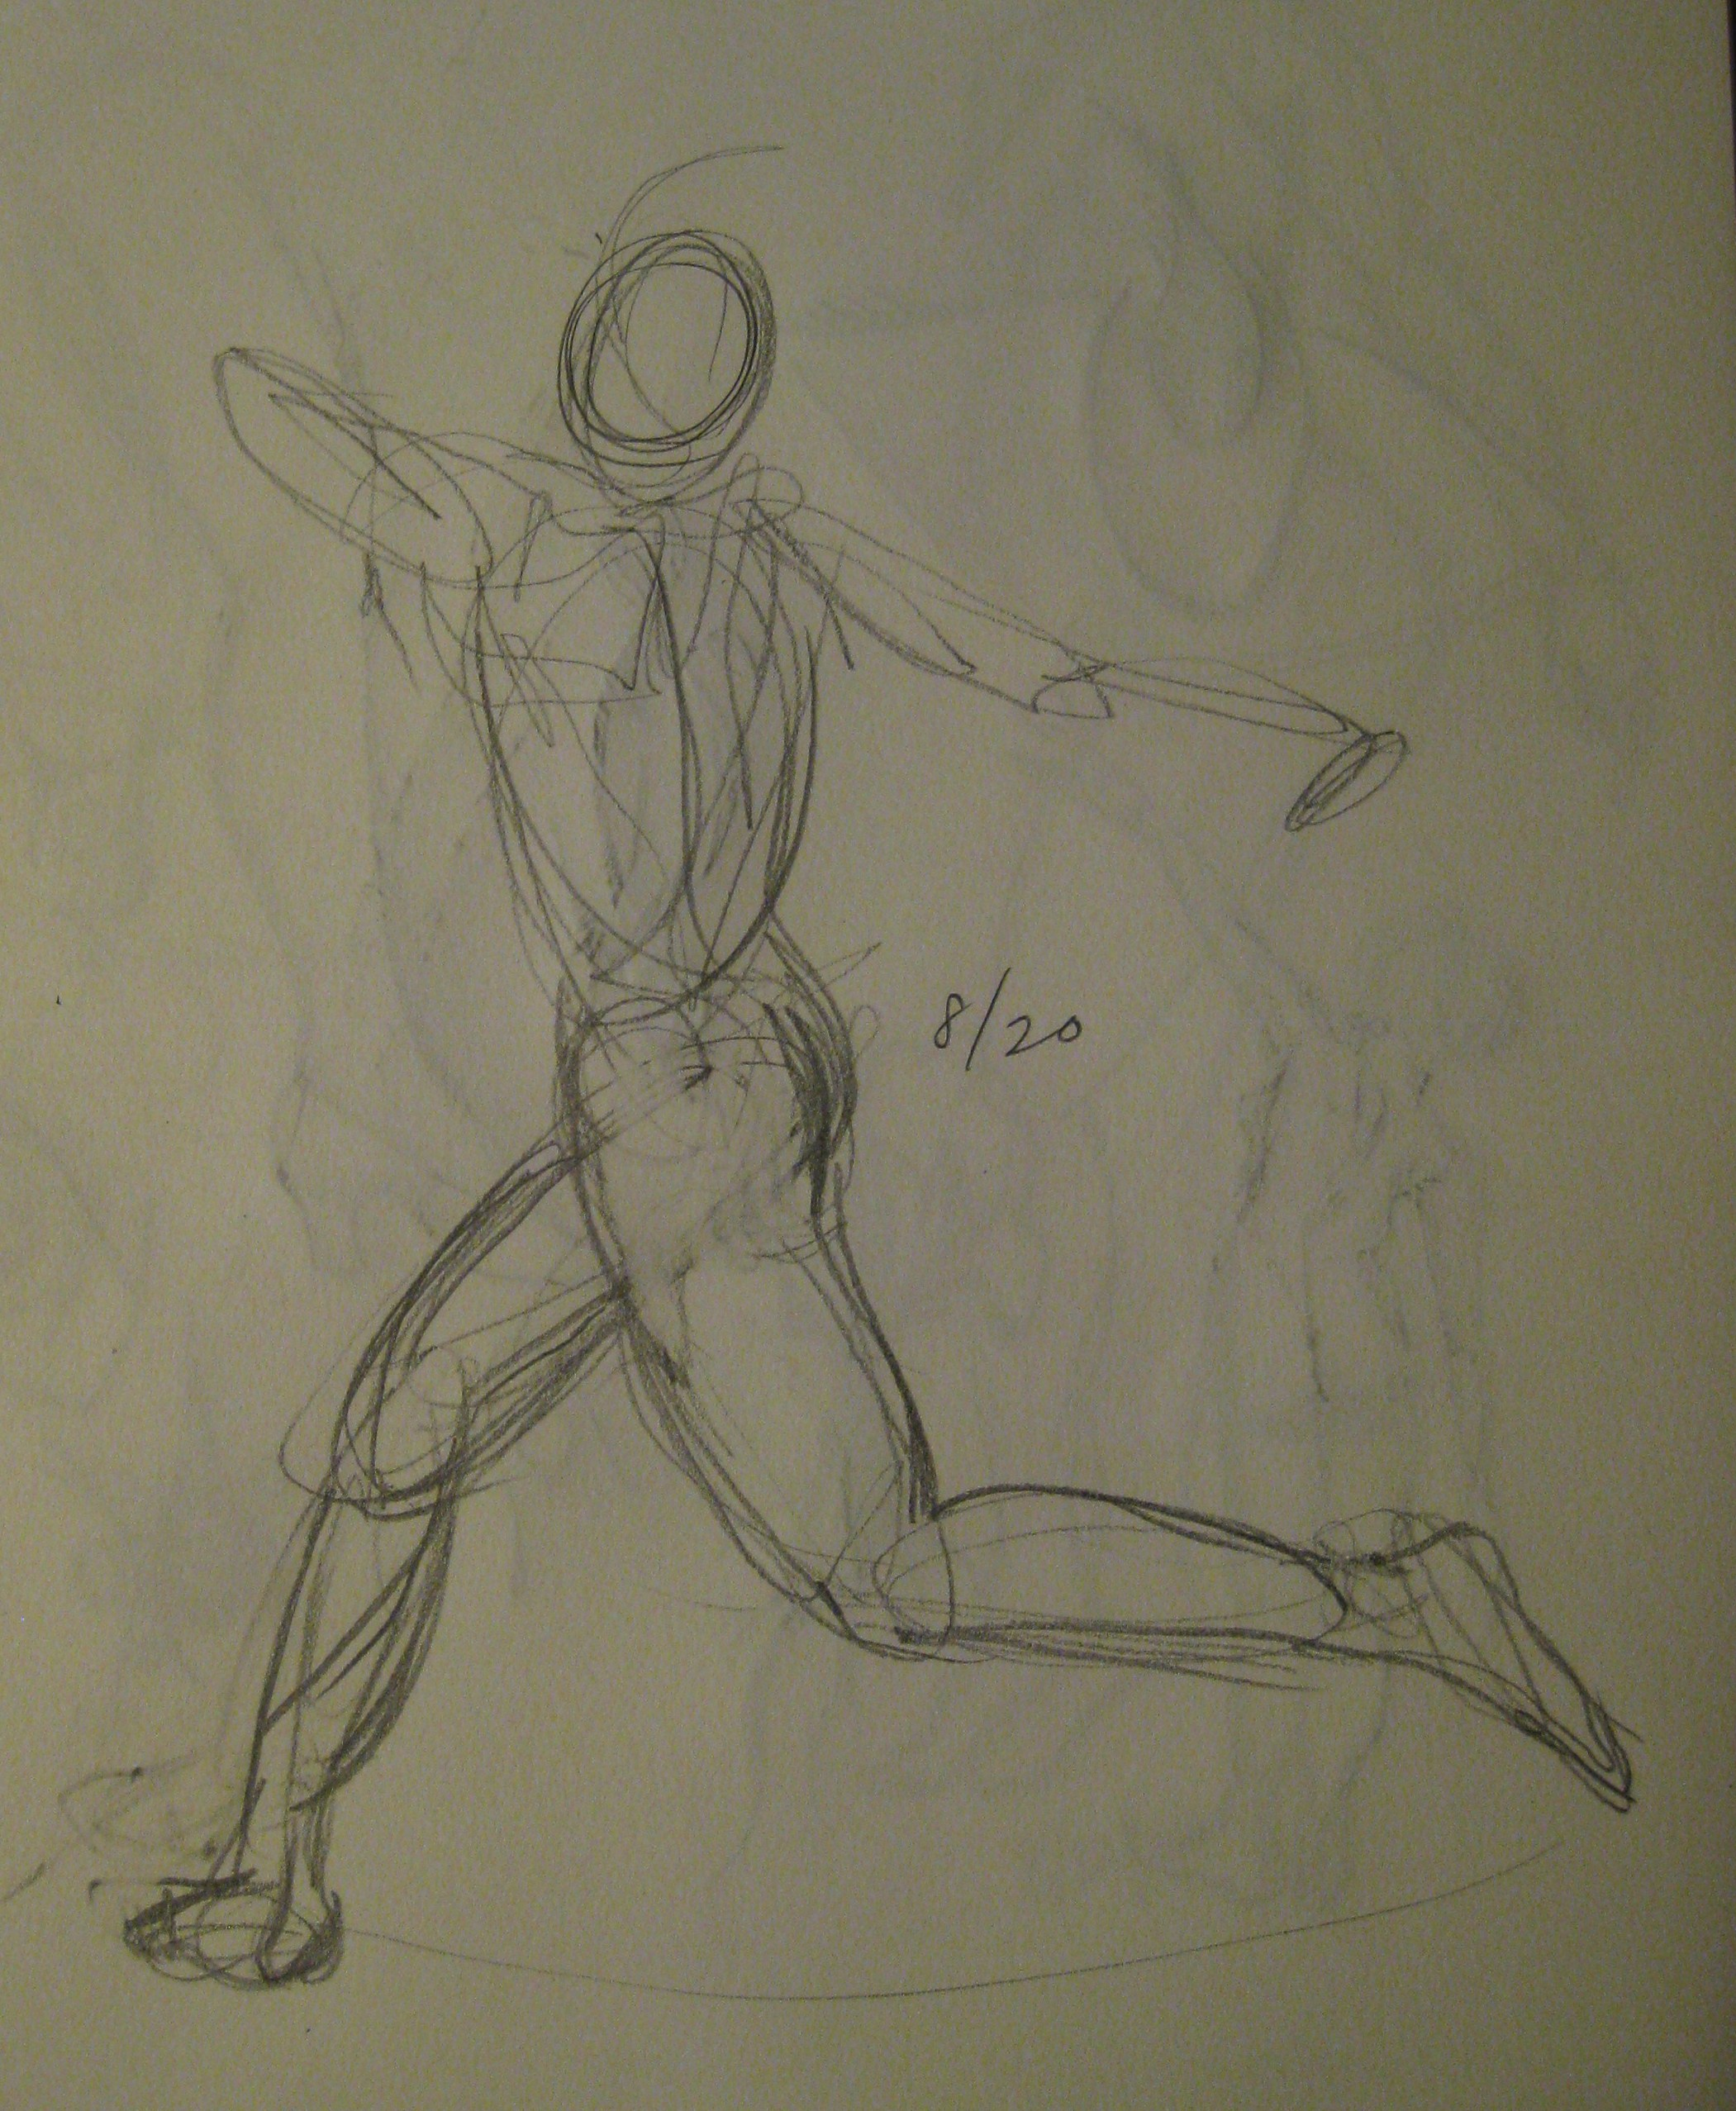 2101x2555 Number 200 (!) Gesture Drawing Running Figure Daily Dose